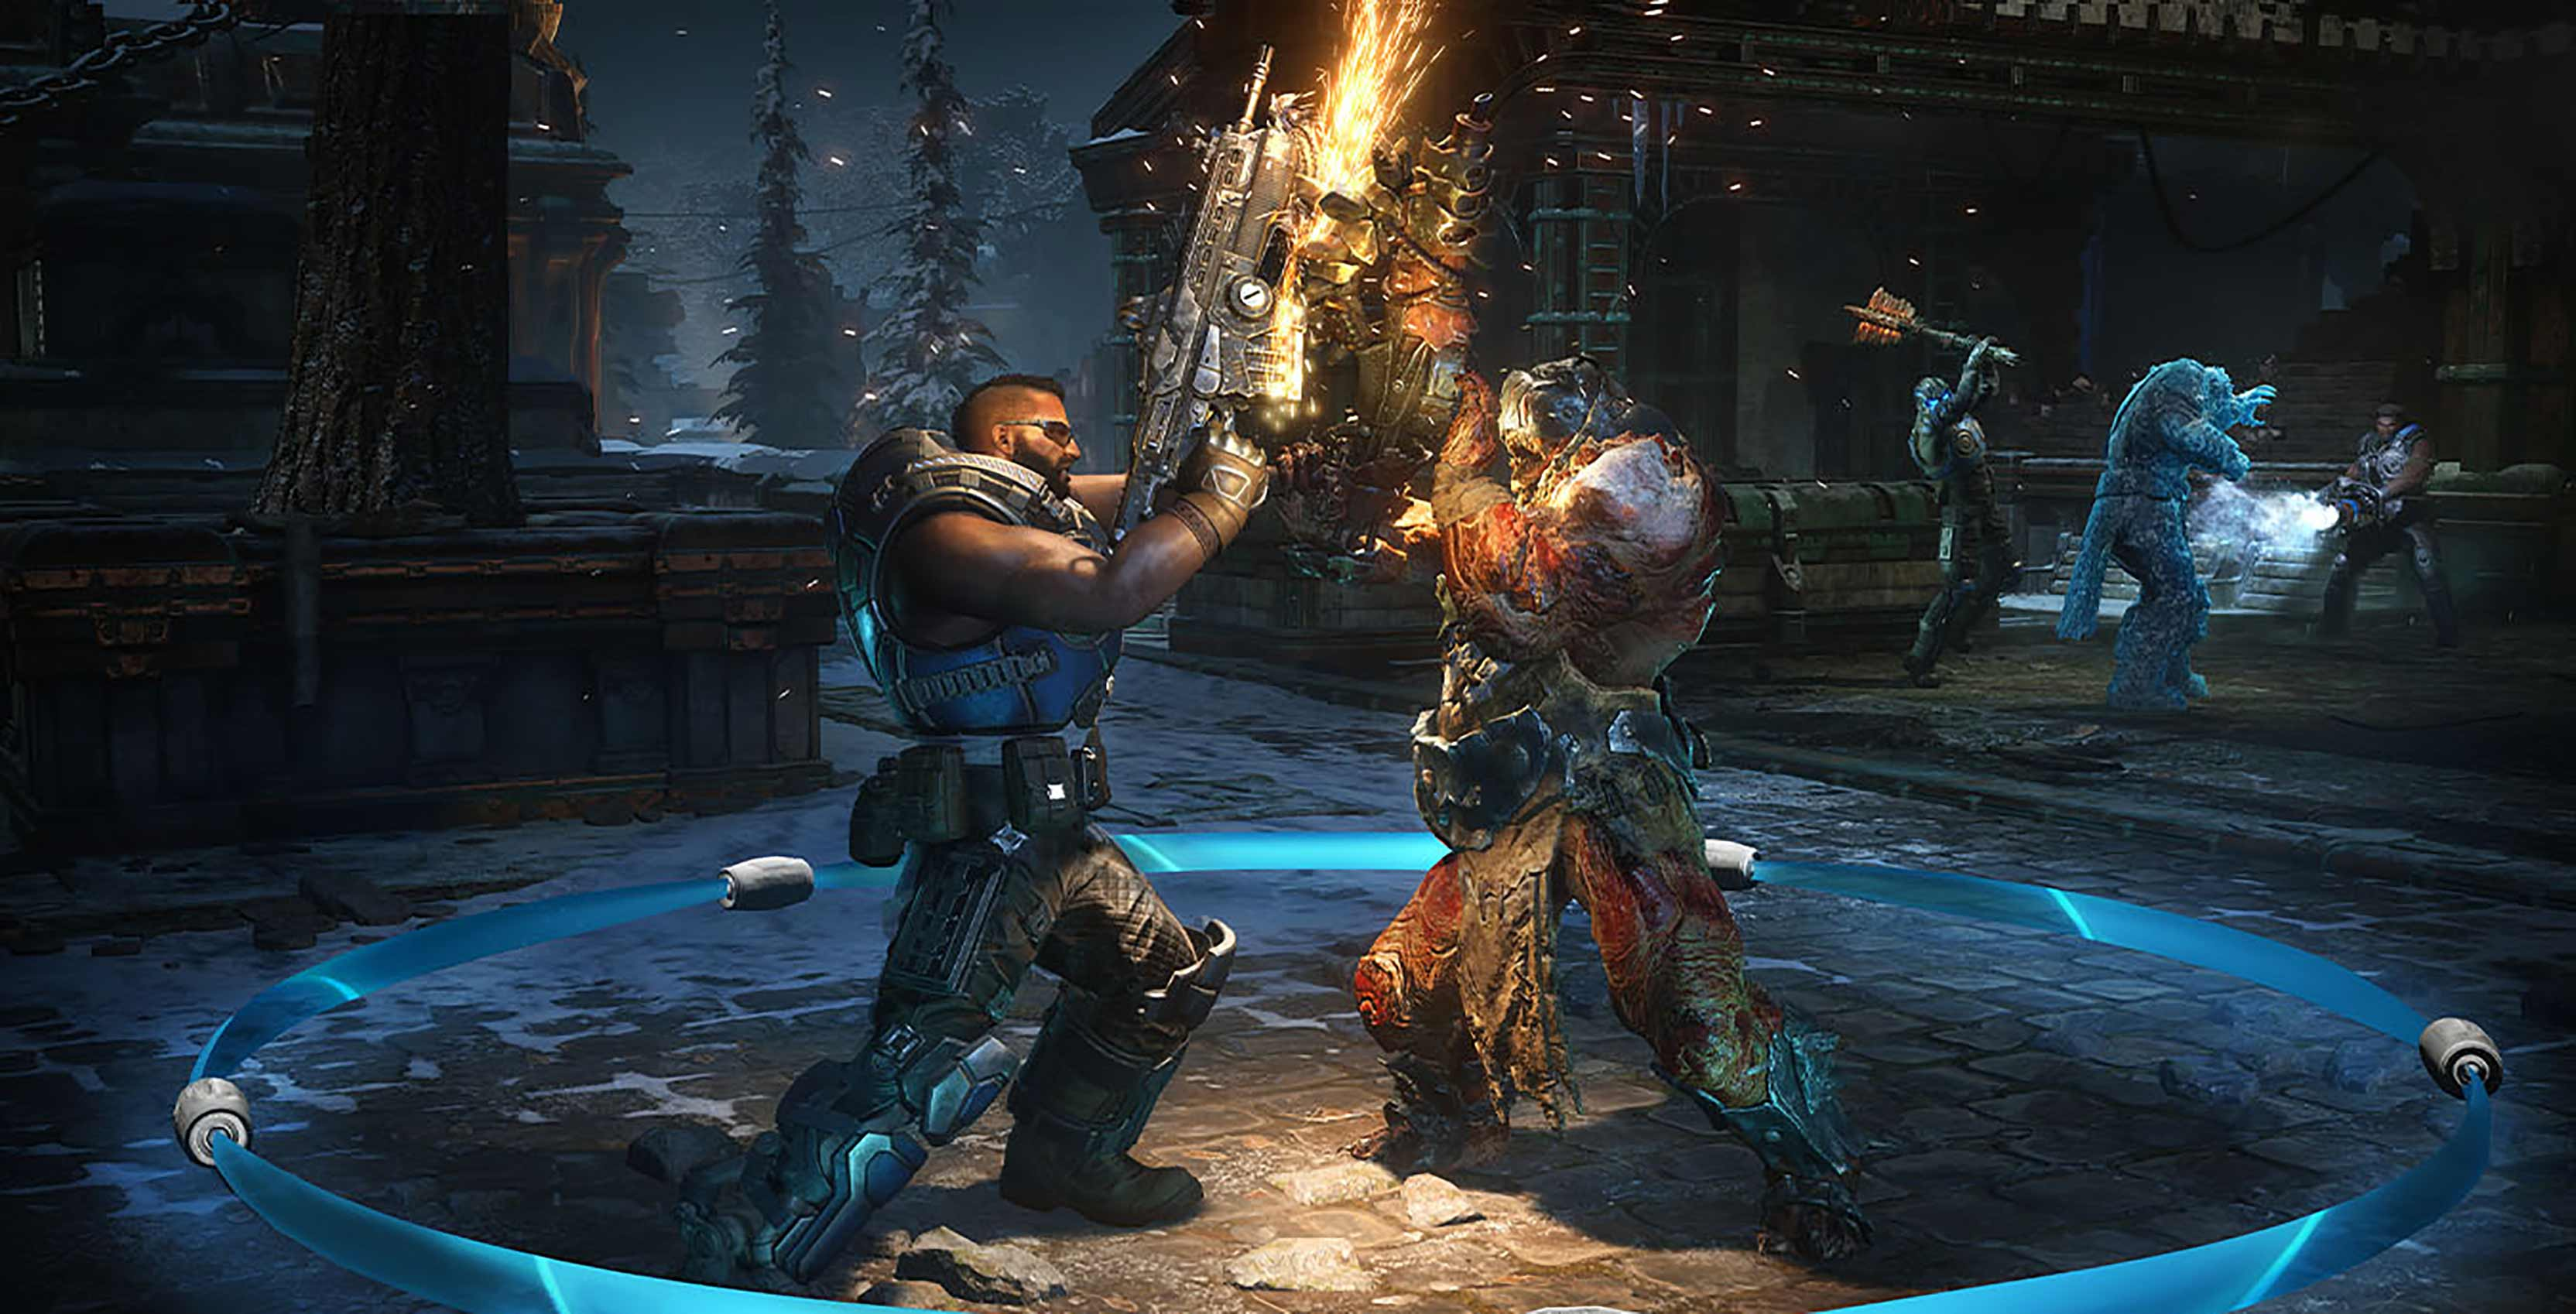 Gears 5 chainsaw duel